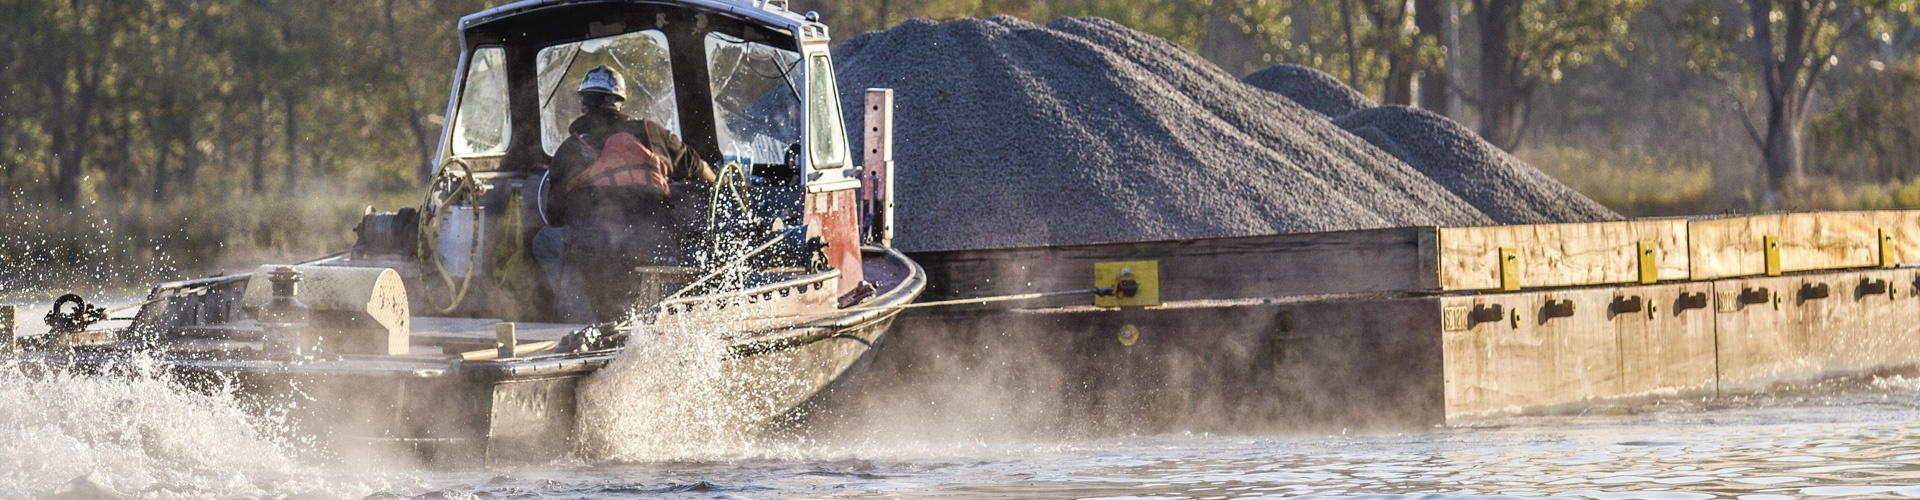 material transport, barge transport, environmental dredging, mechanical dredging, remedial dredging